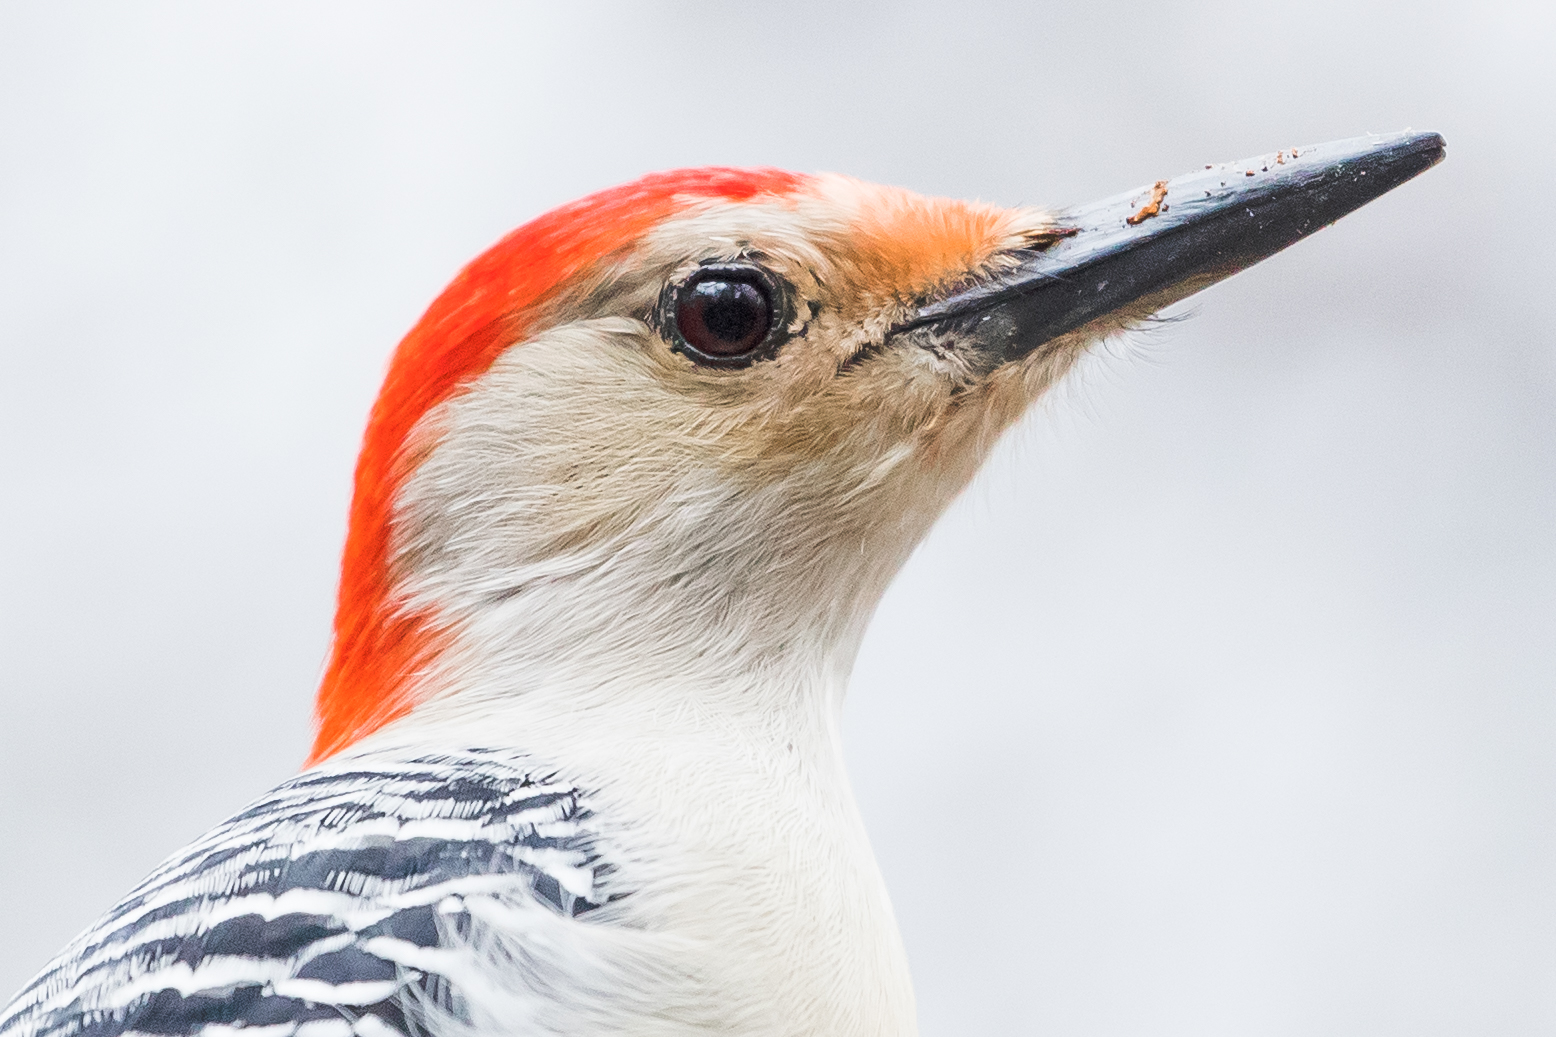 Red-bellied Woodpecker - Topsfield, MA